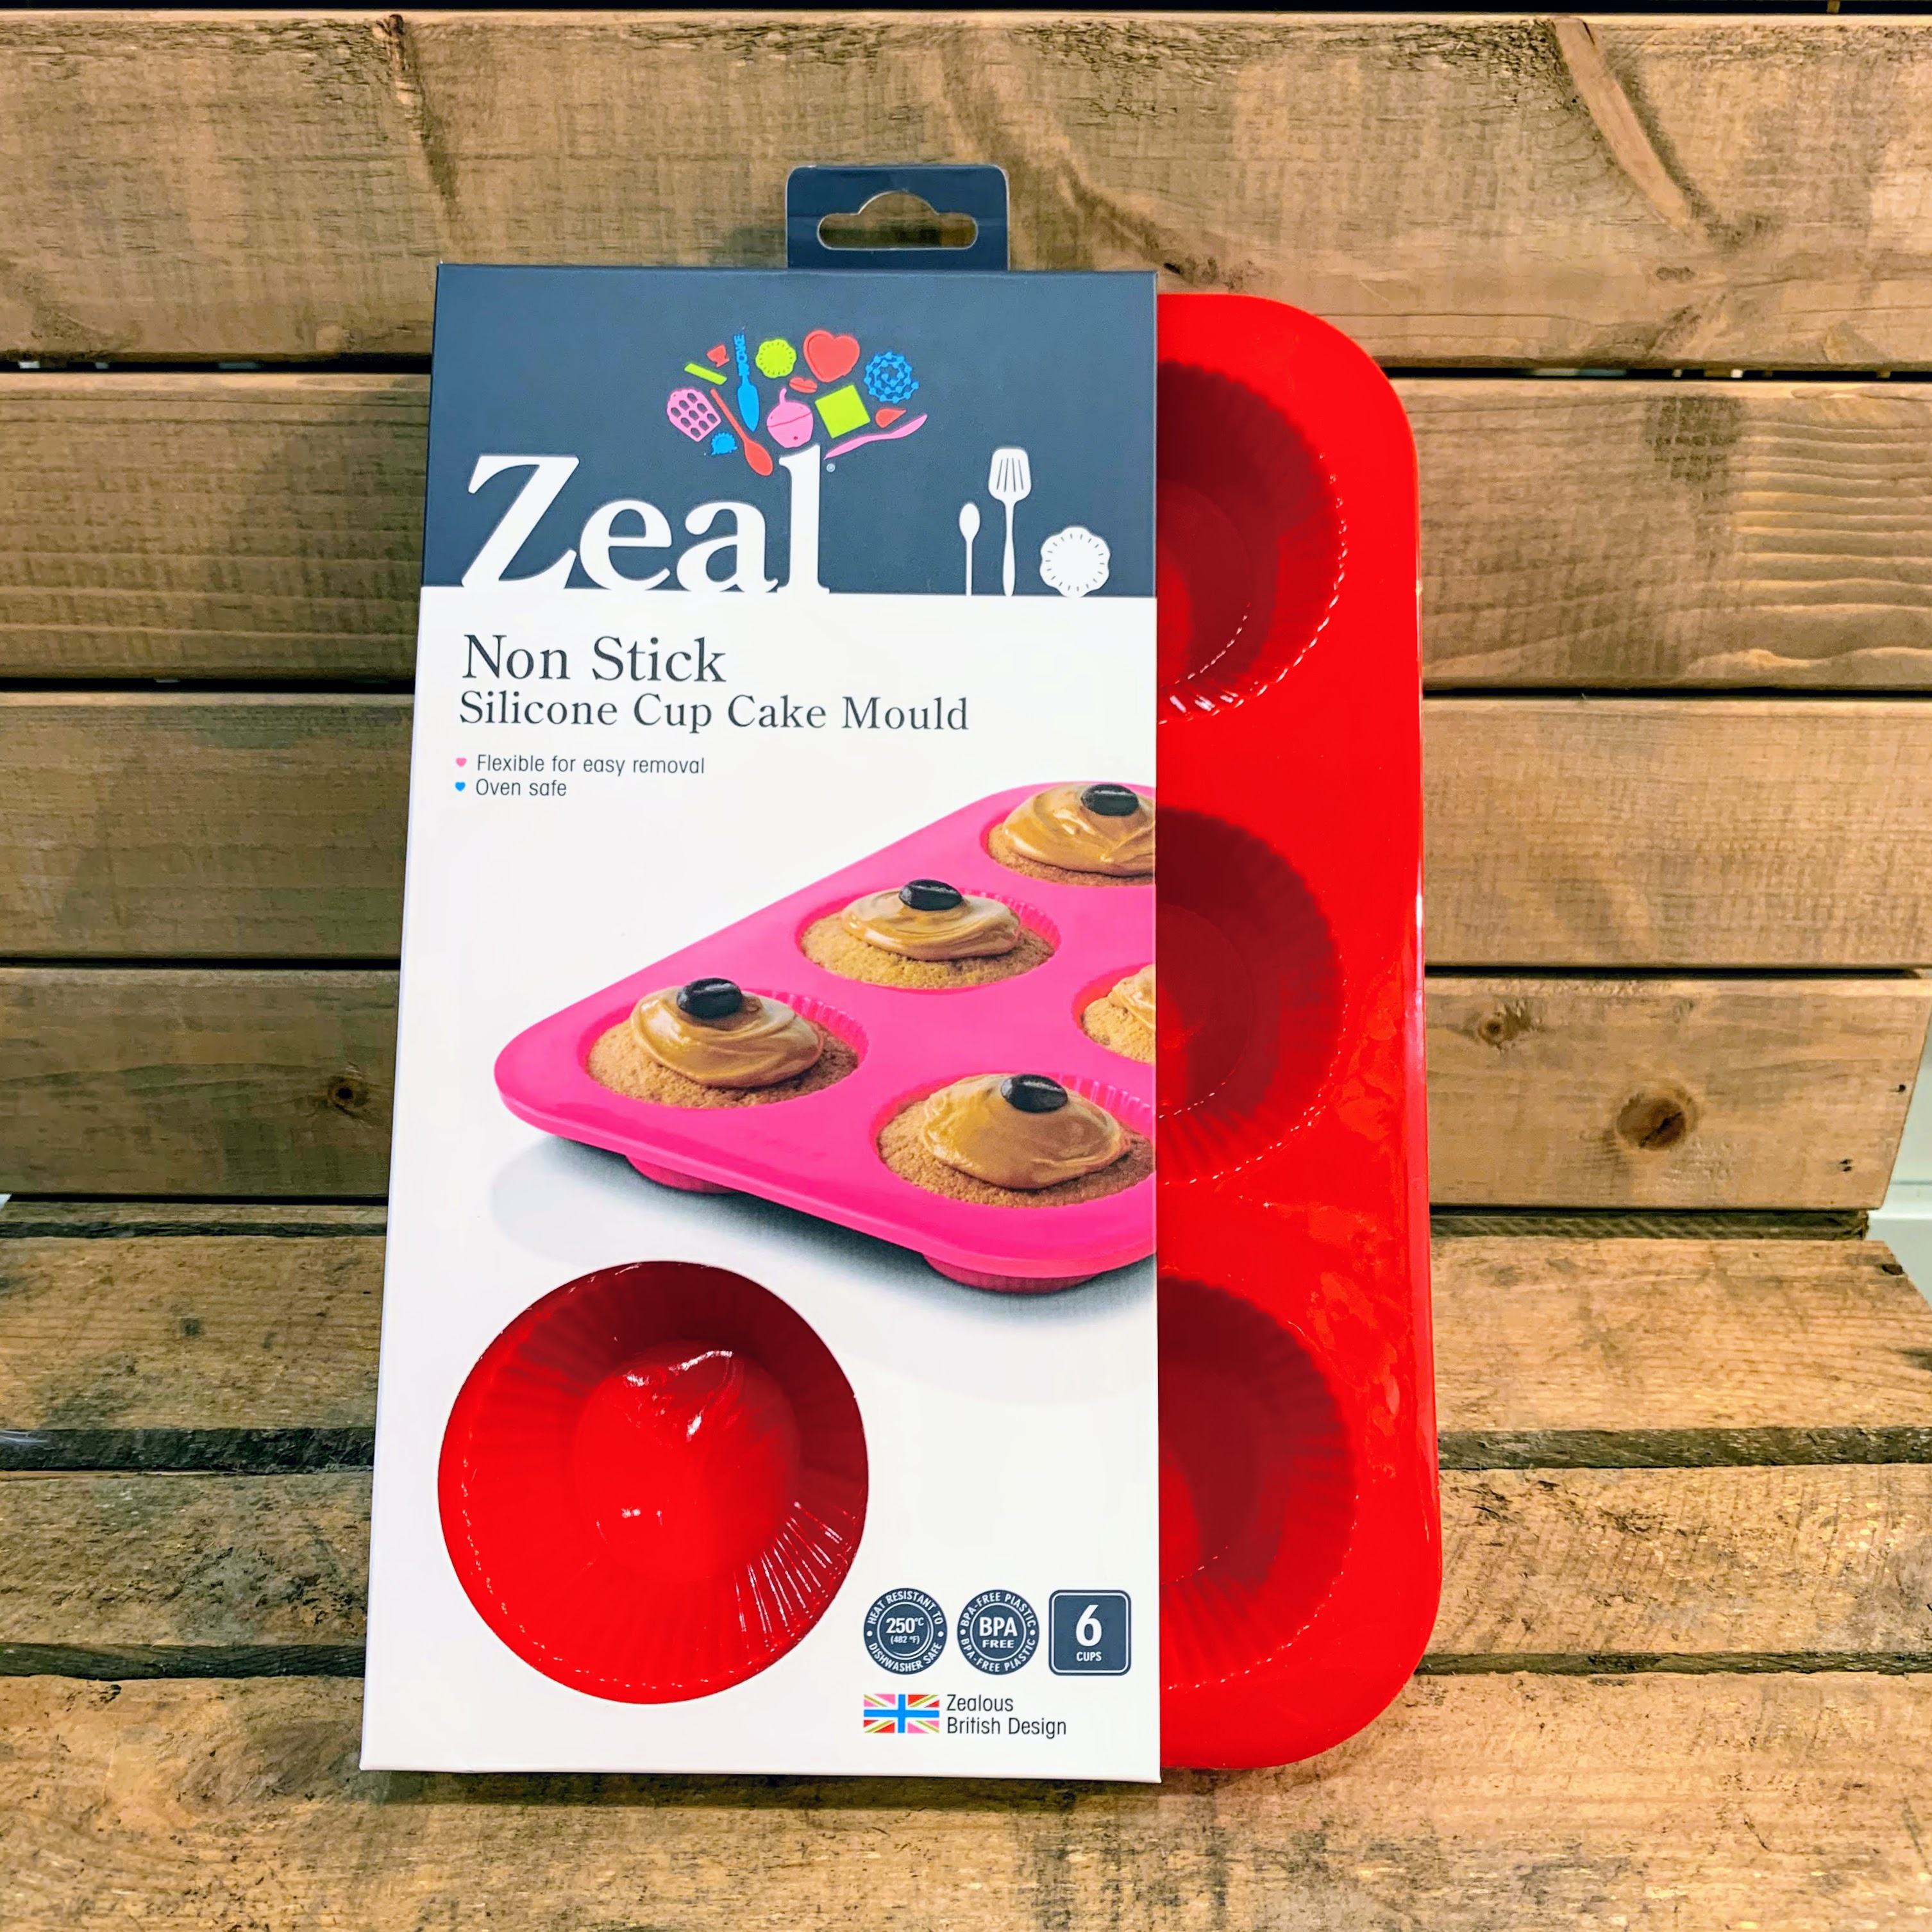 Zeal Non Stick Silicone Cupcake Mould